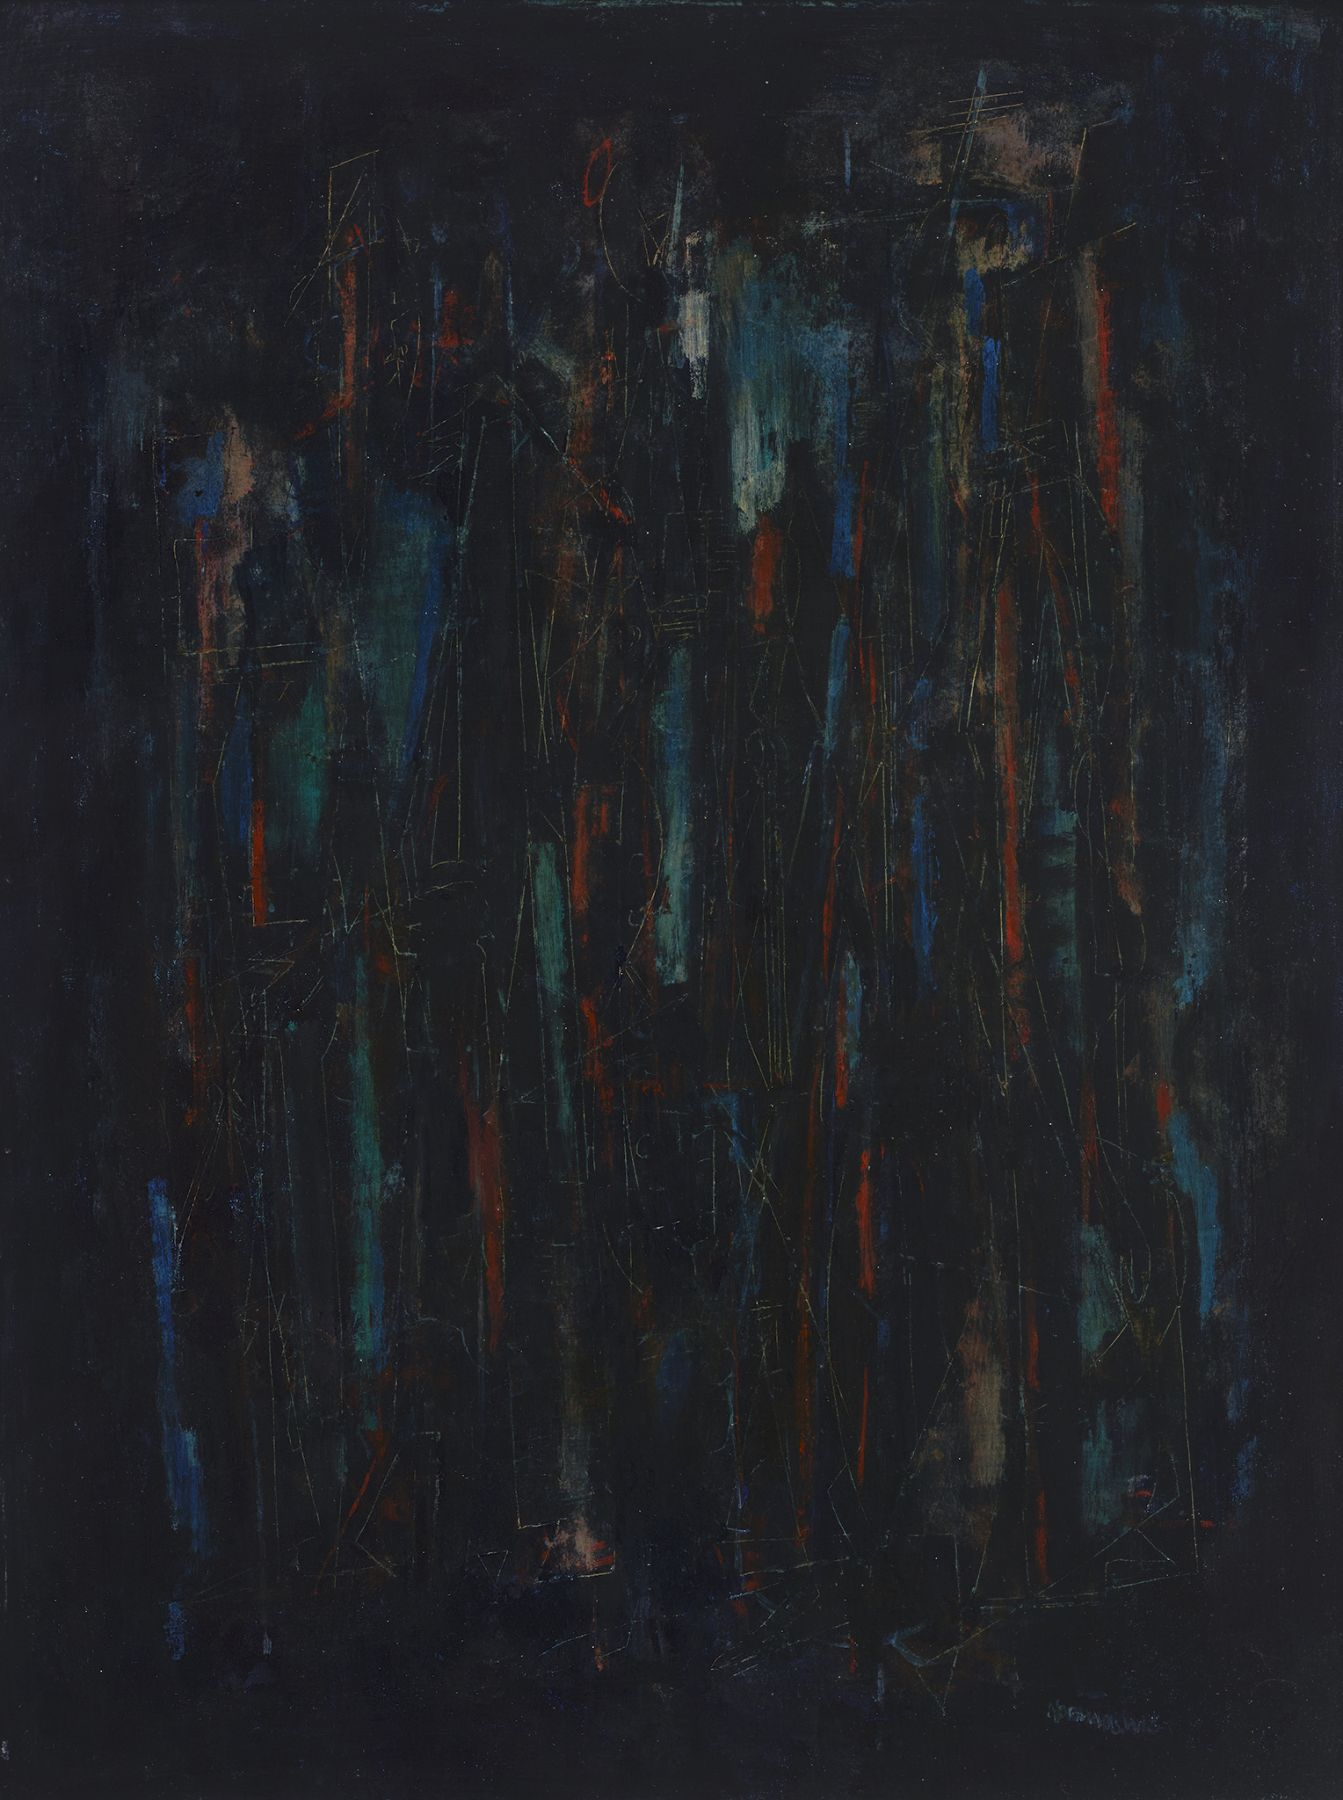 Norman Lewis, Musicians, 1948, Oil with sgraffito on masonite, 24 x 18 inches, Signed lower right, Dark abstract painting with layers of black, red and blue. Norman Lewis was a vital member of the first generation of abstract expressionists. He was the sole African American artist of his generation and his art derived from his interests in music and equality issues.